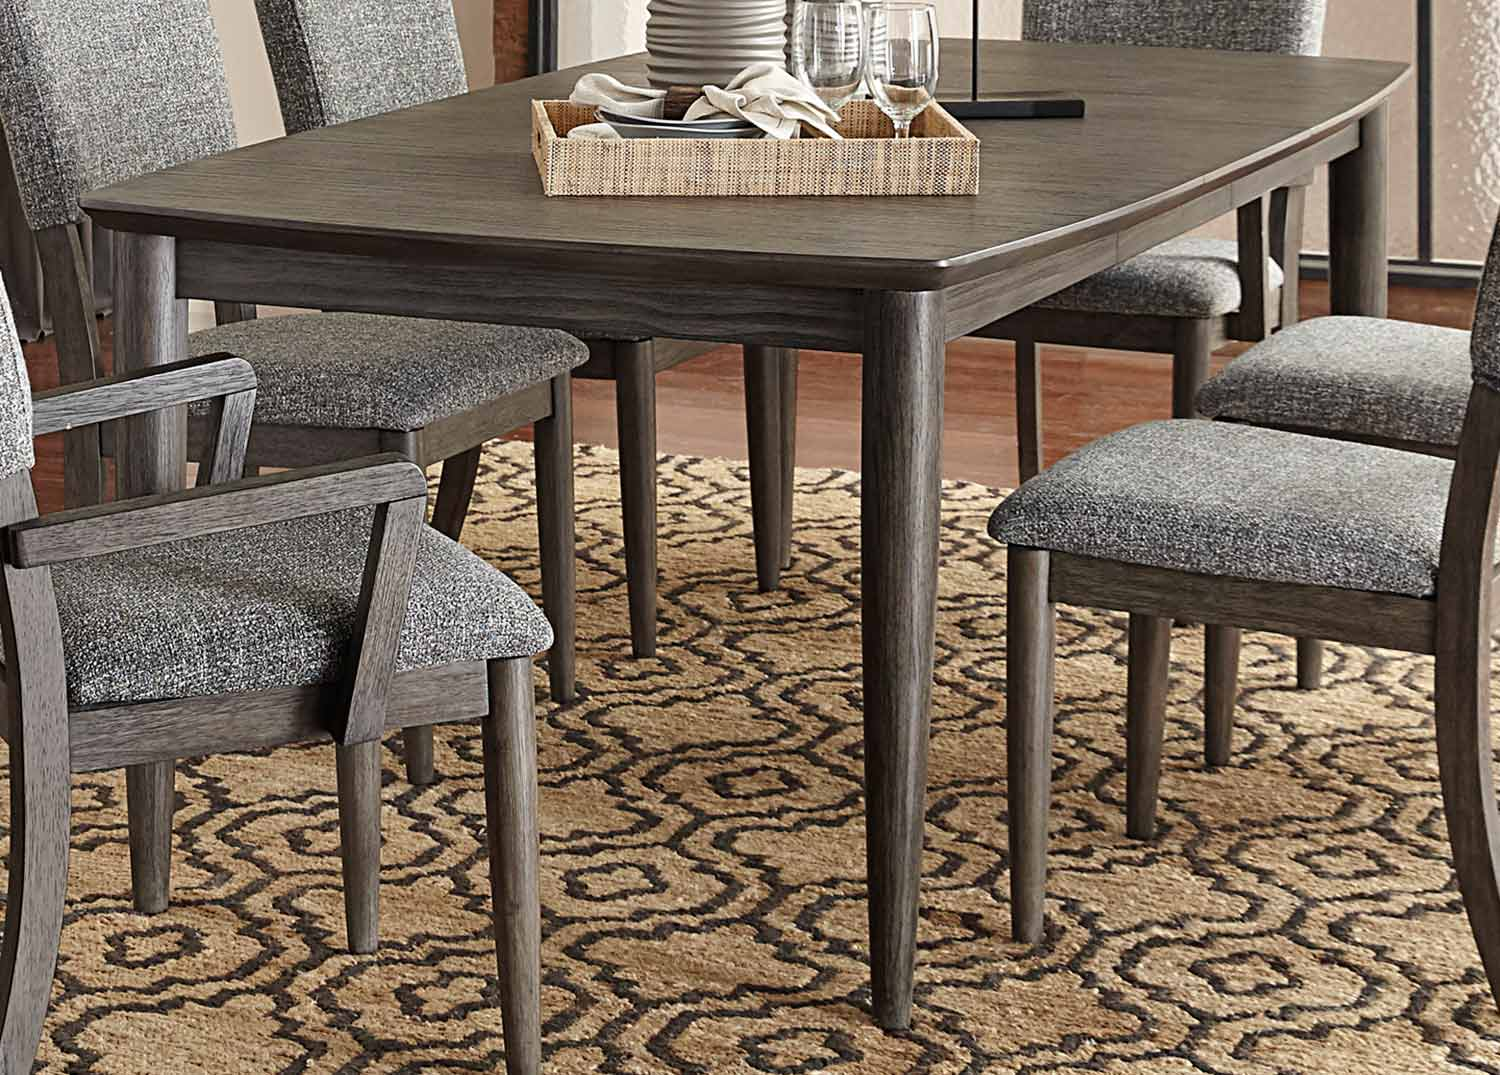 Homelegance Roux Dining Table - Rustic or Grey